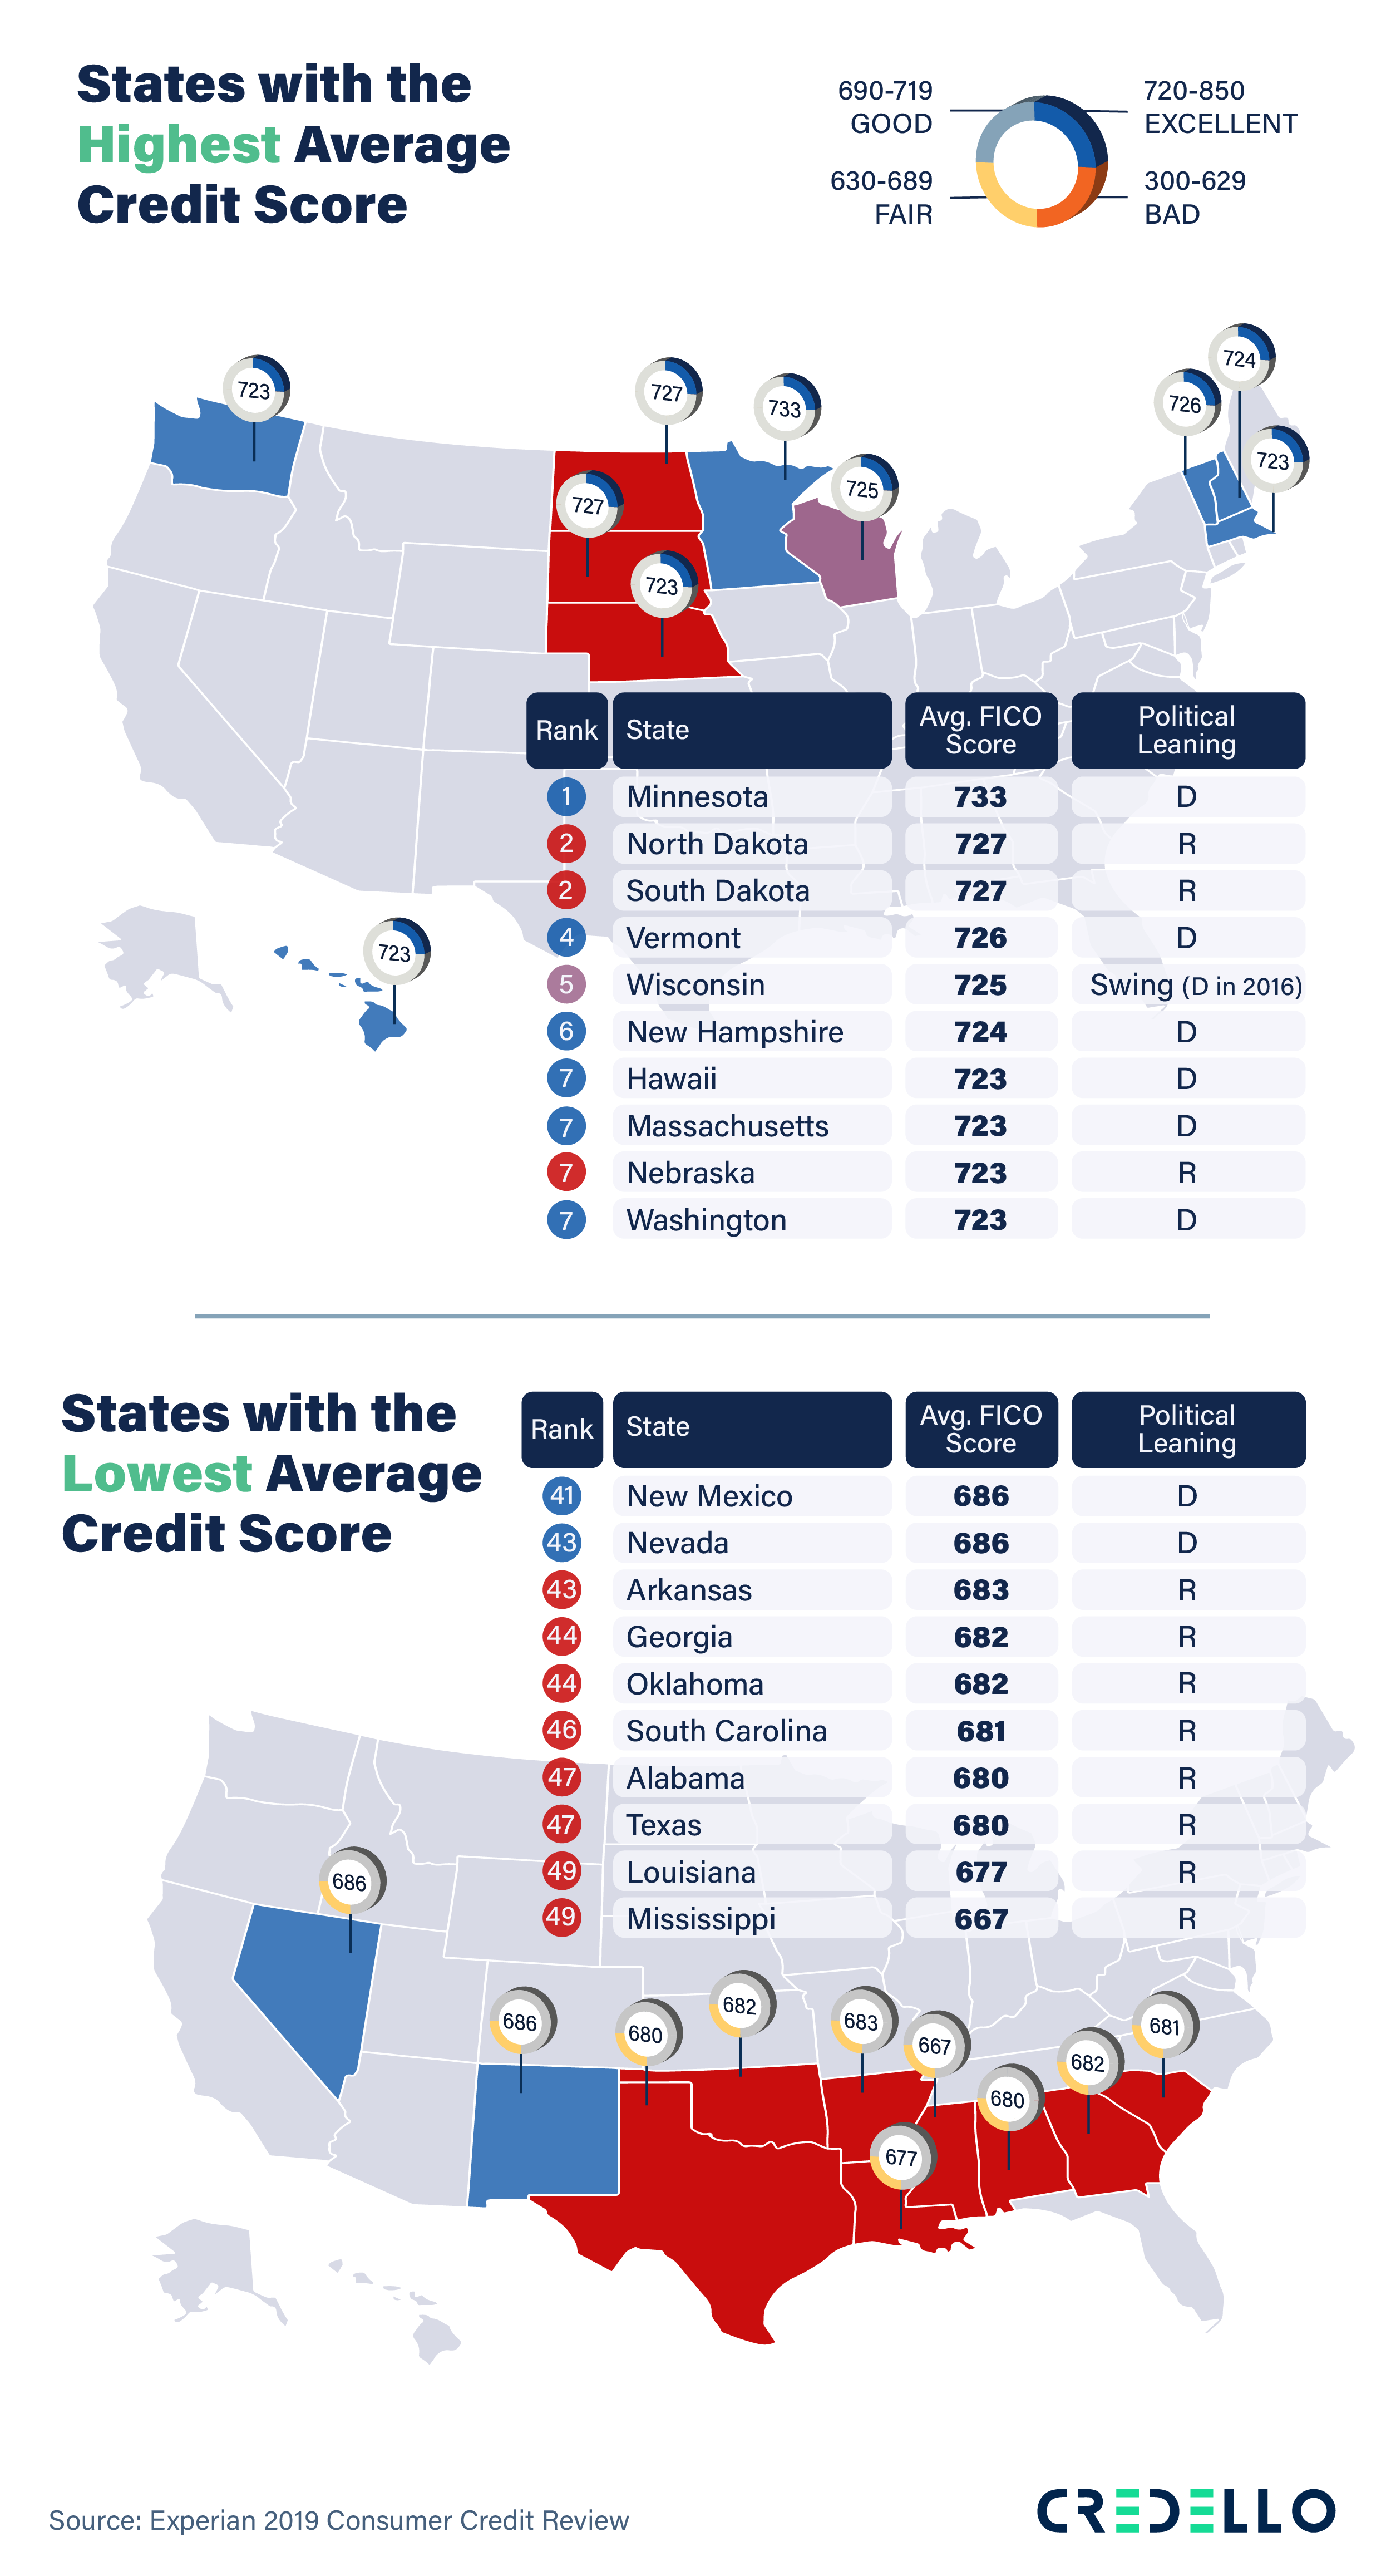 Take a look at the highest and lowest average credit scores in the red and blue states